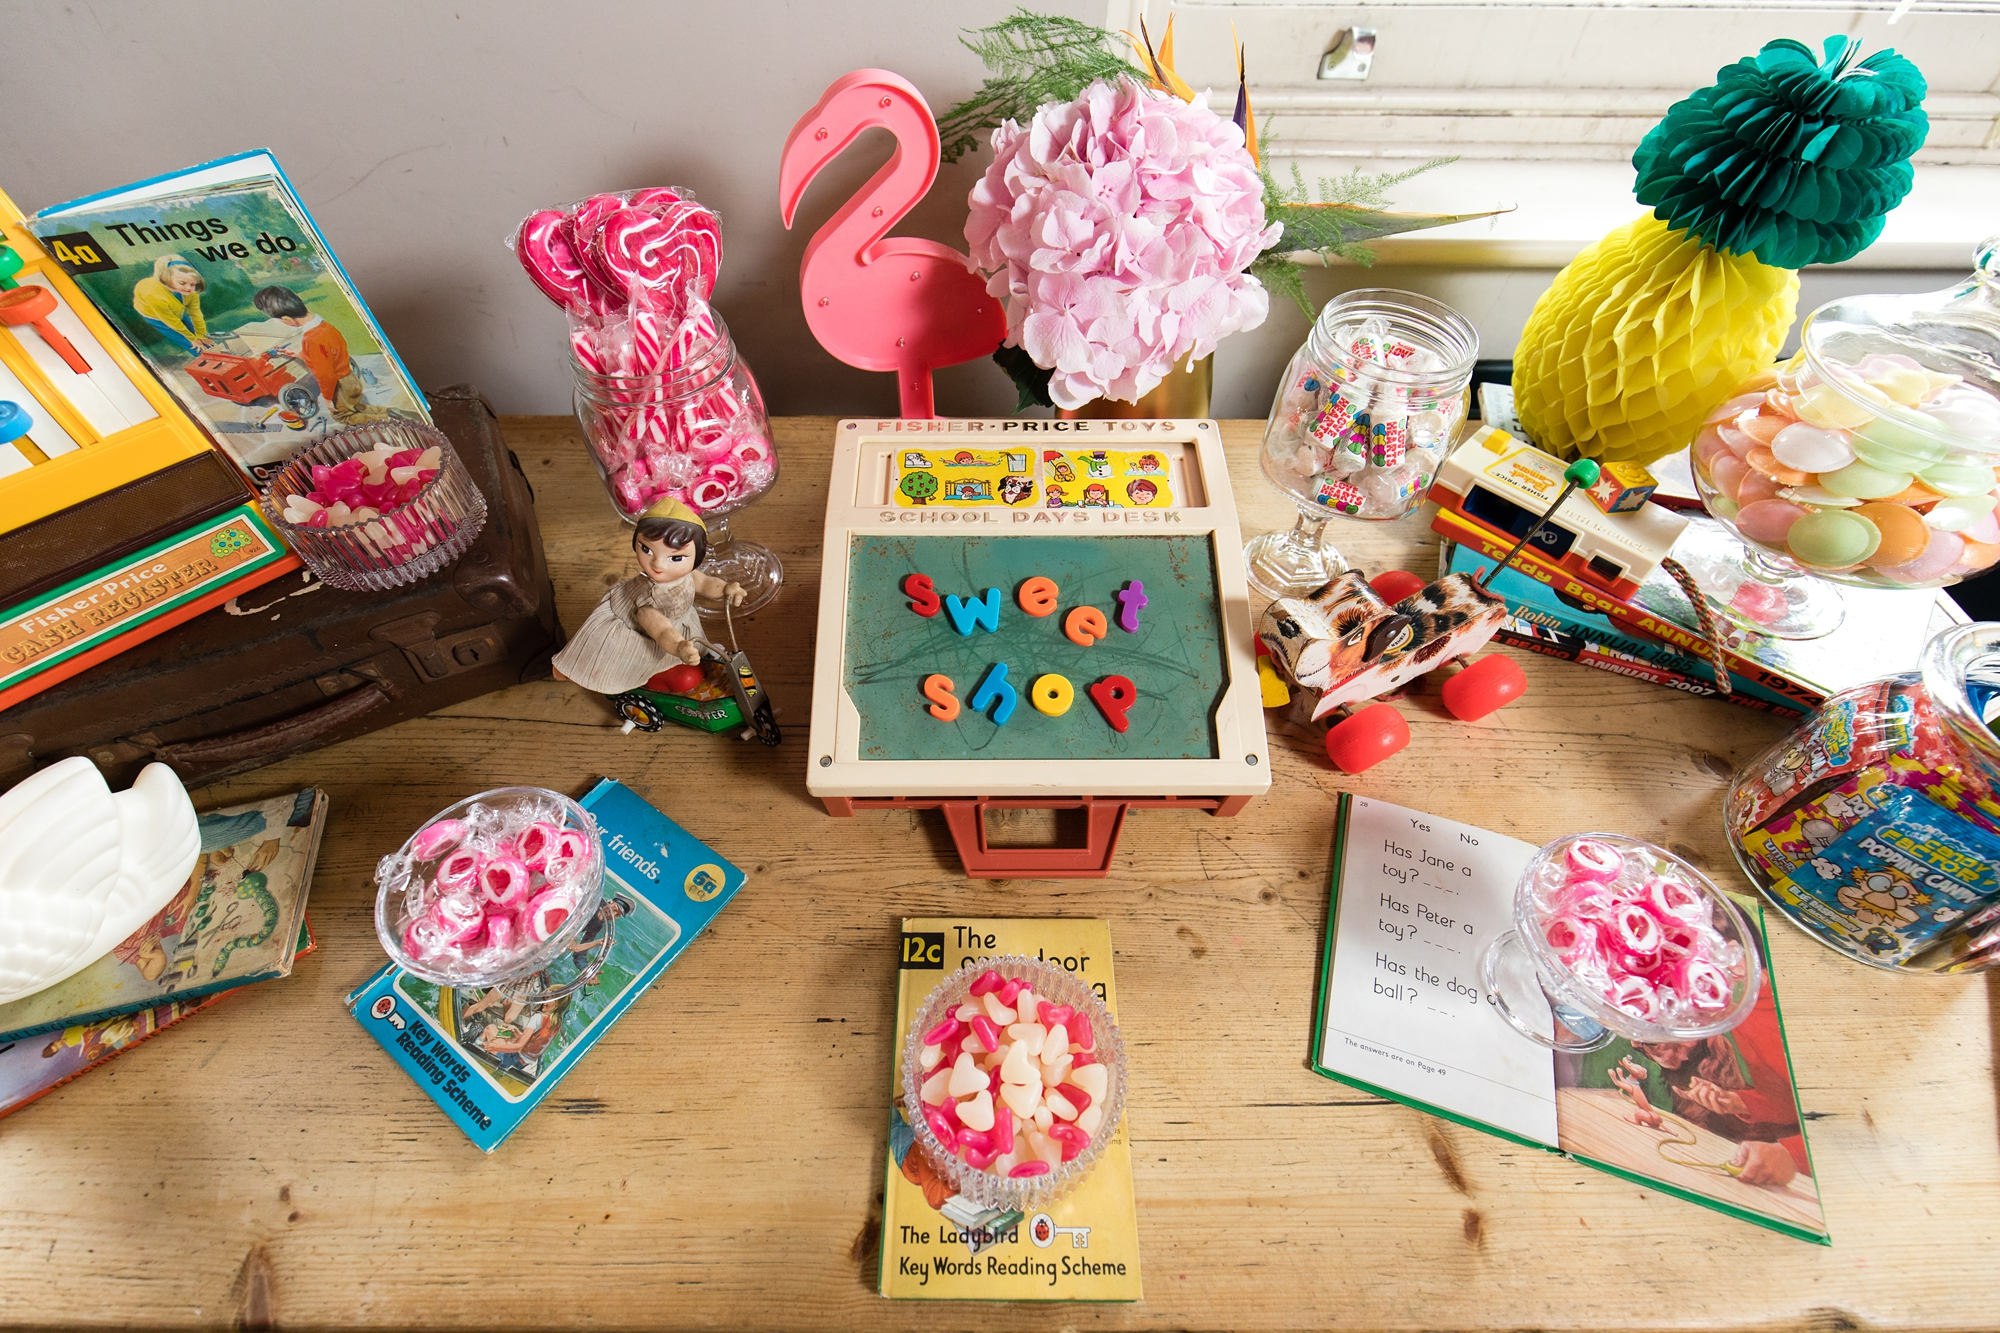 Quirky and fun wedding details with flamingos and children's toys